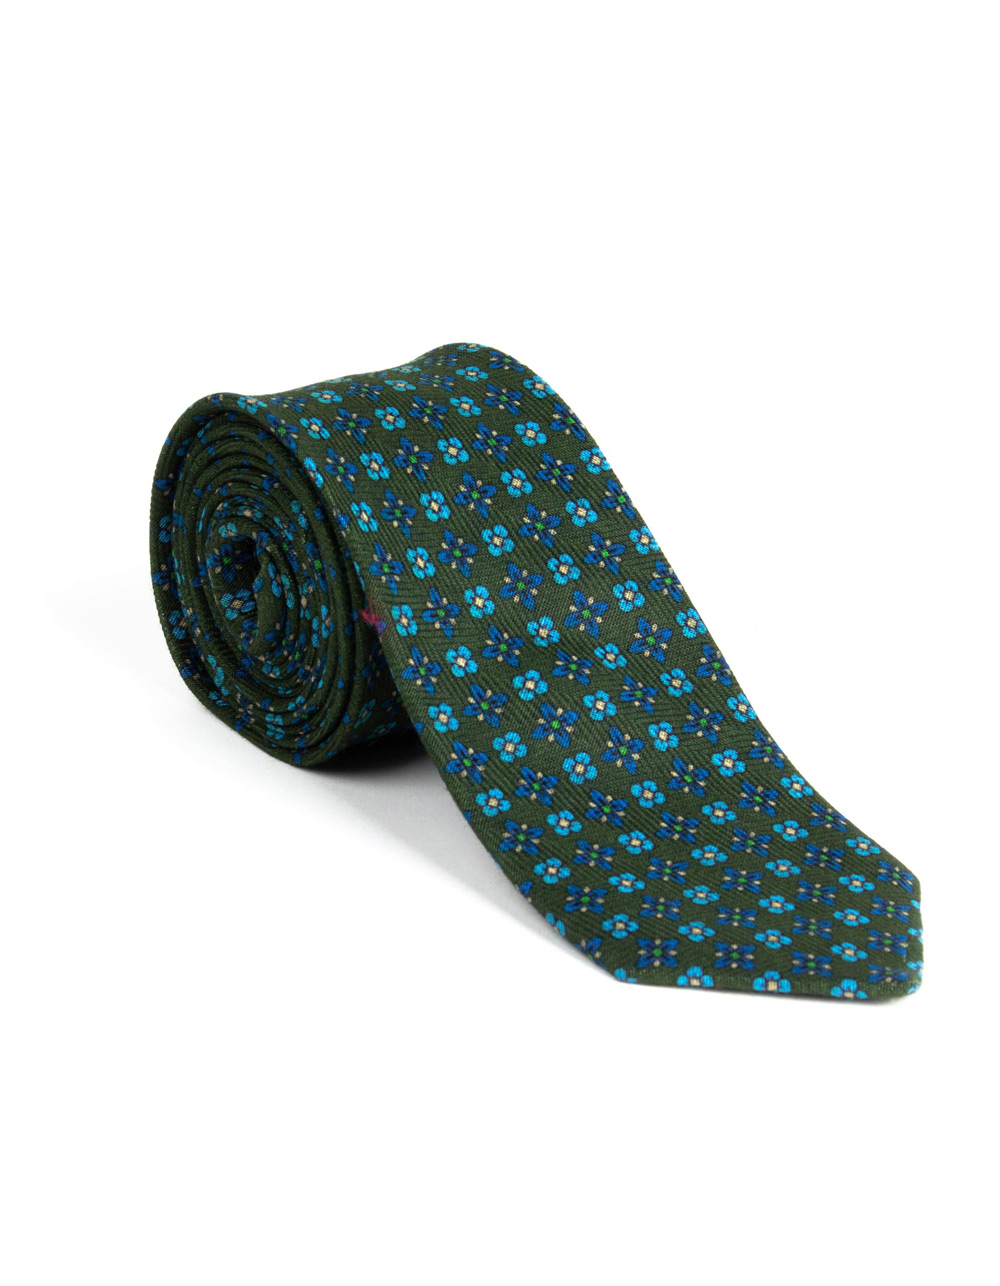 Green tie with floral print